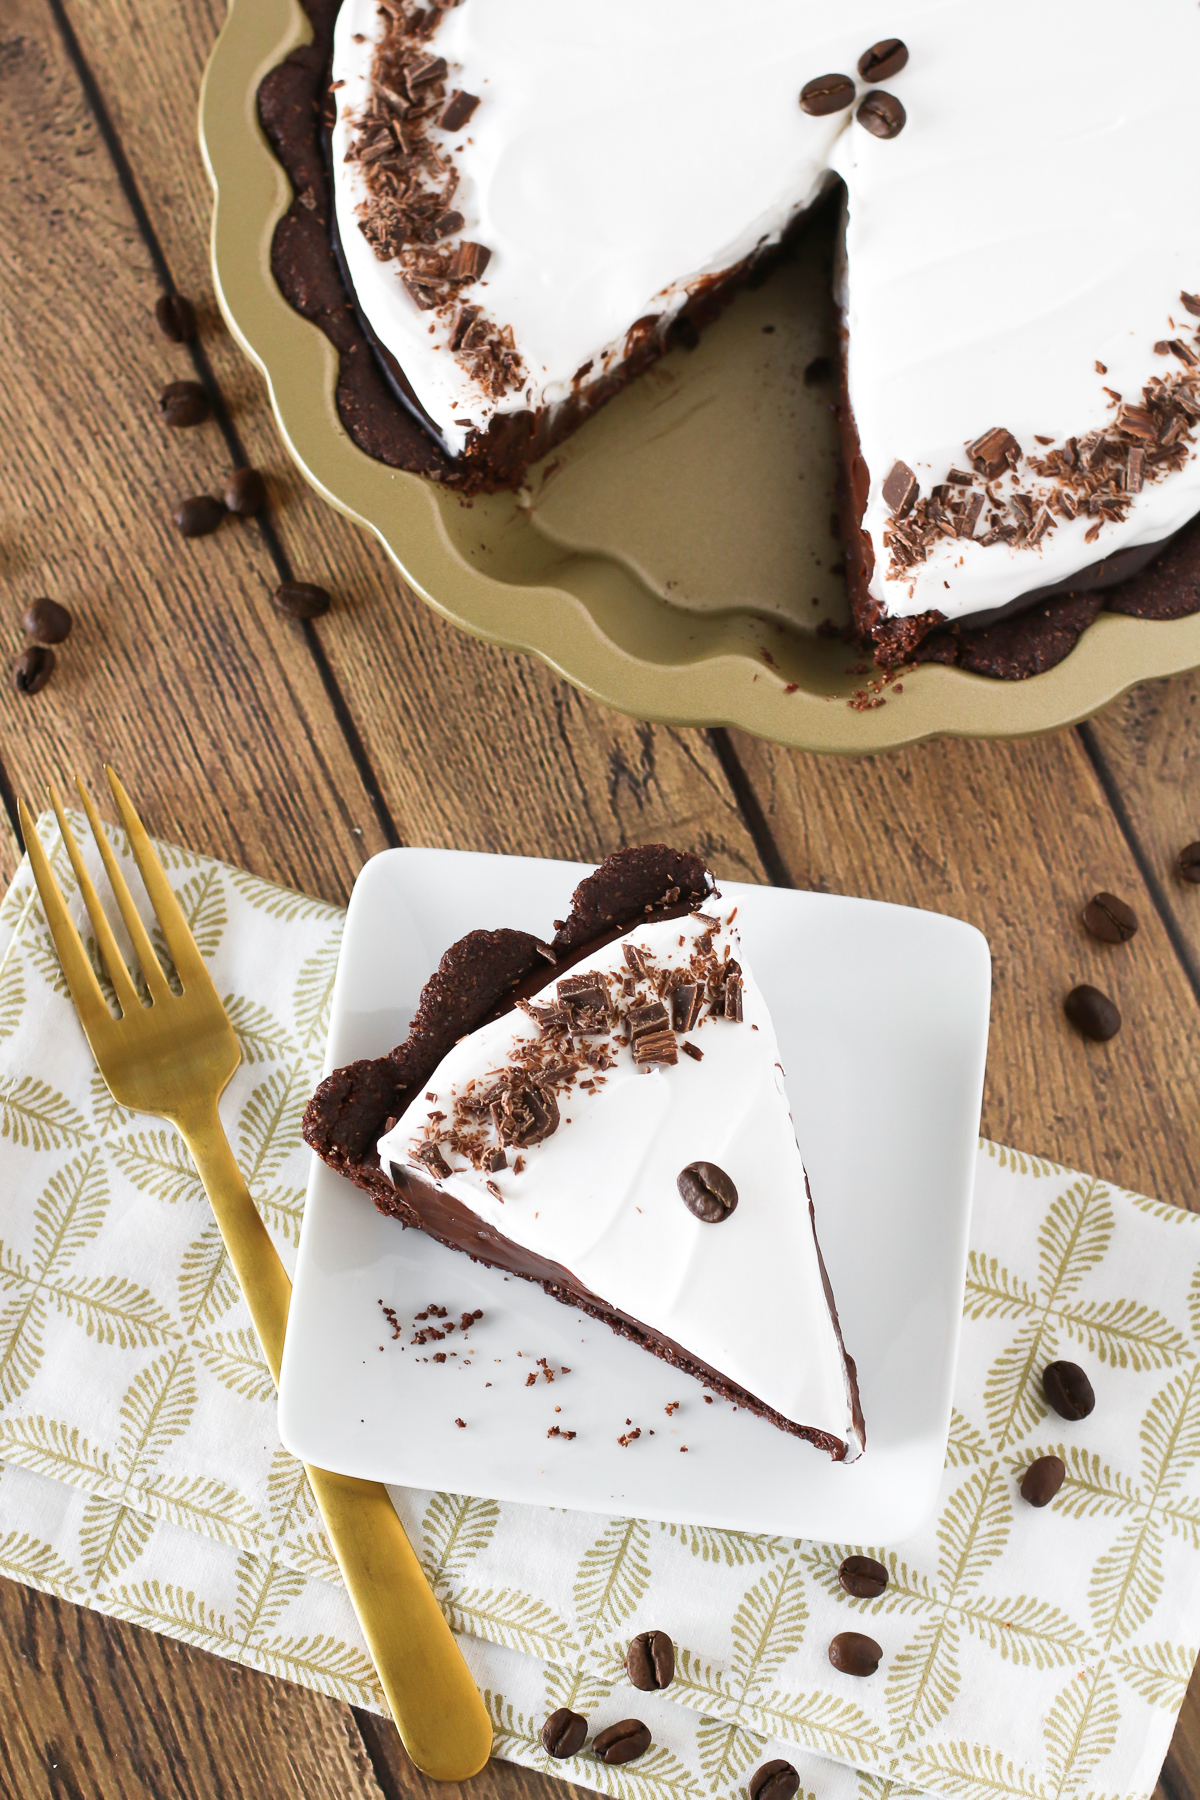 Gluten Free Vegan Mocha Cream Pie. Chocolate cookie crust filled with a decadent dairy free mocha pudding. A slice of chocolaty coffee heaven!